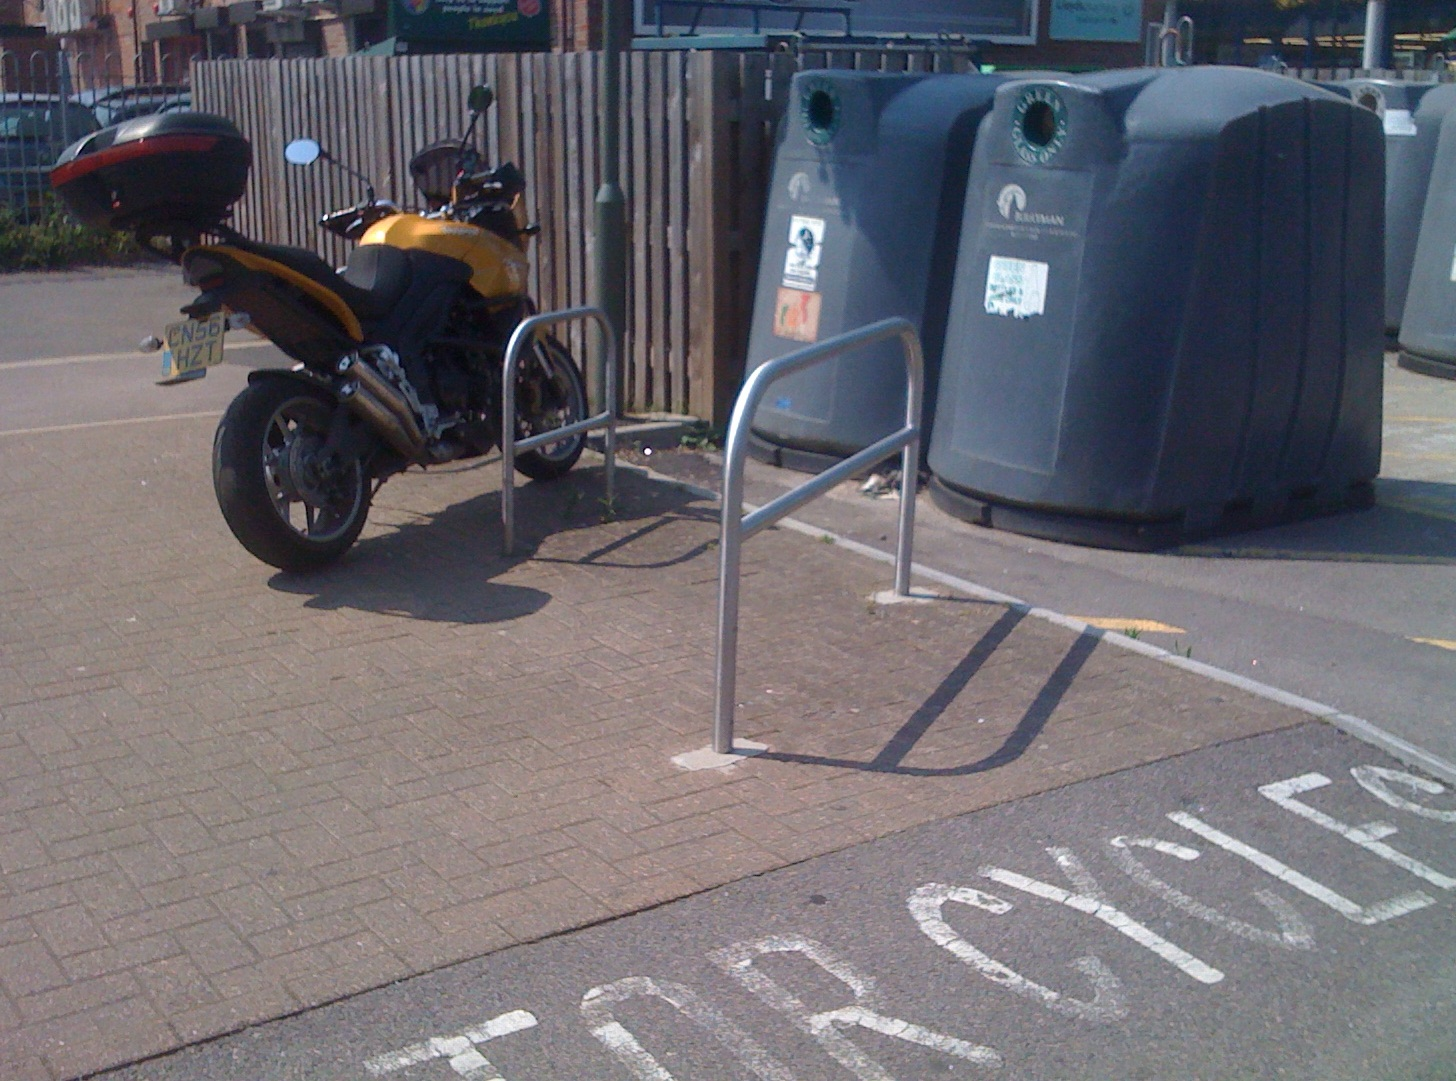 Motorcycle Parking at Woodley Precinct